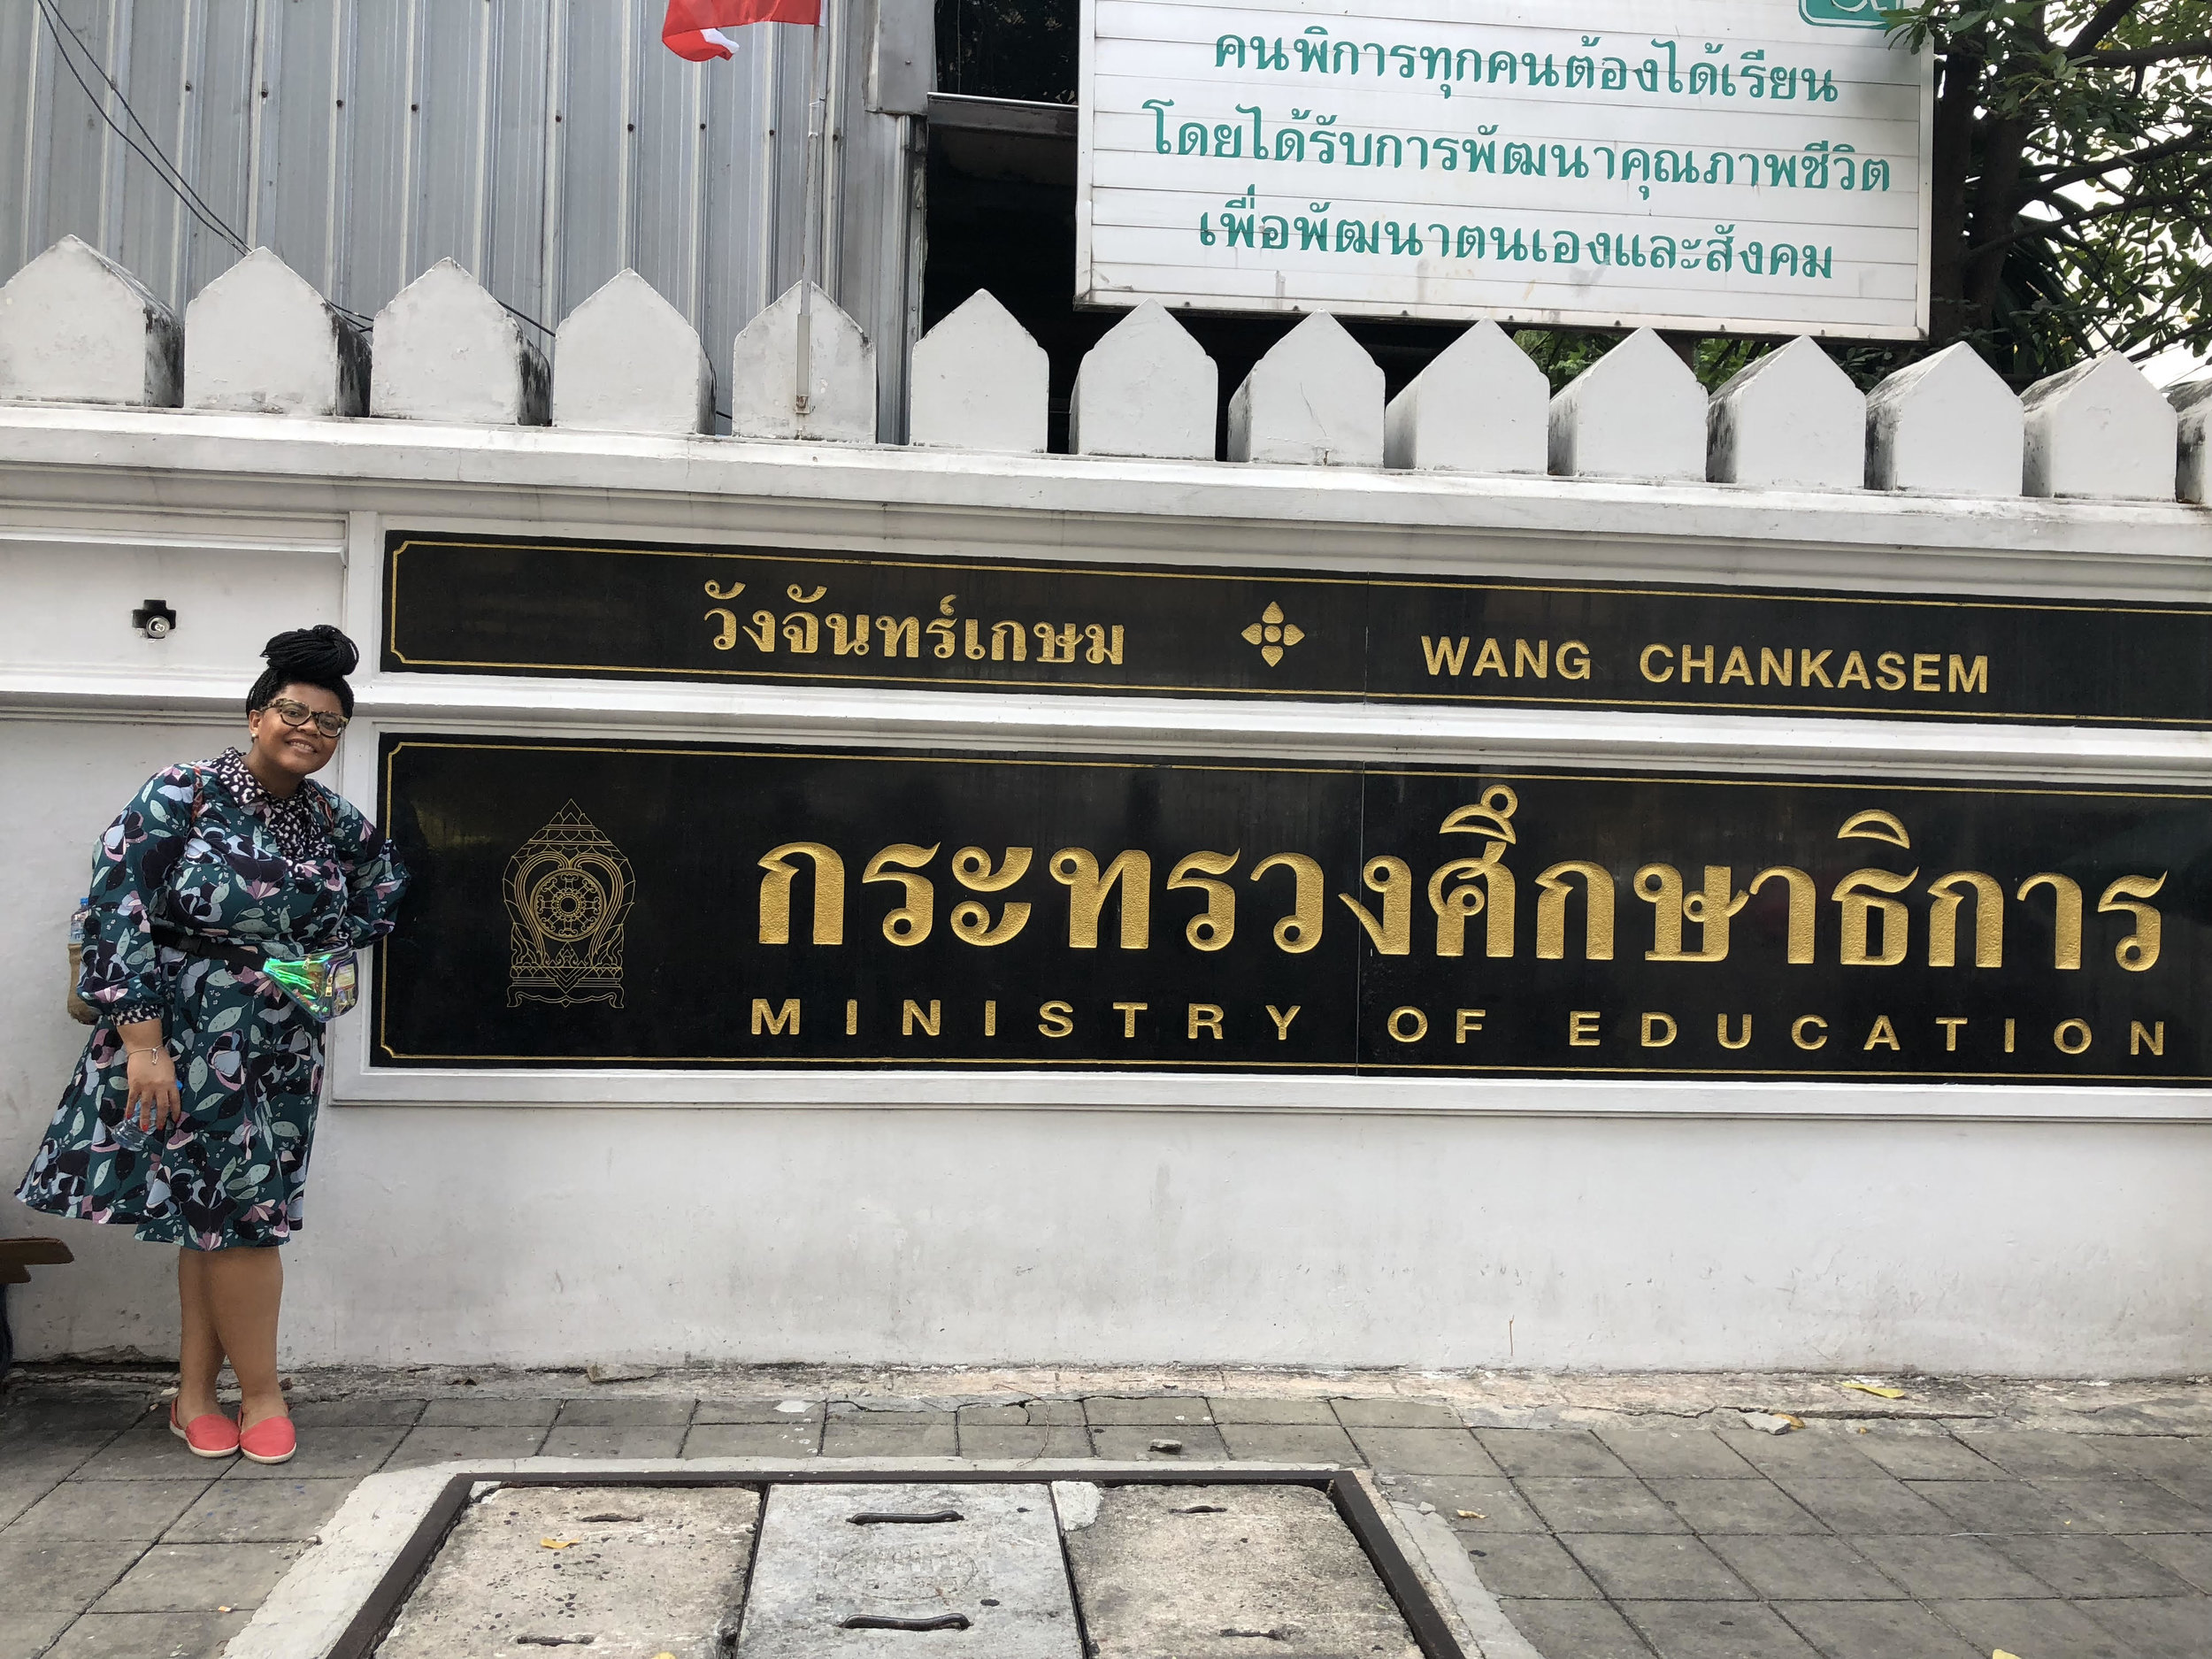 Ministry of Ed Pic.jpg